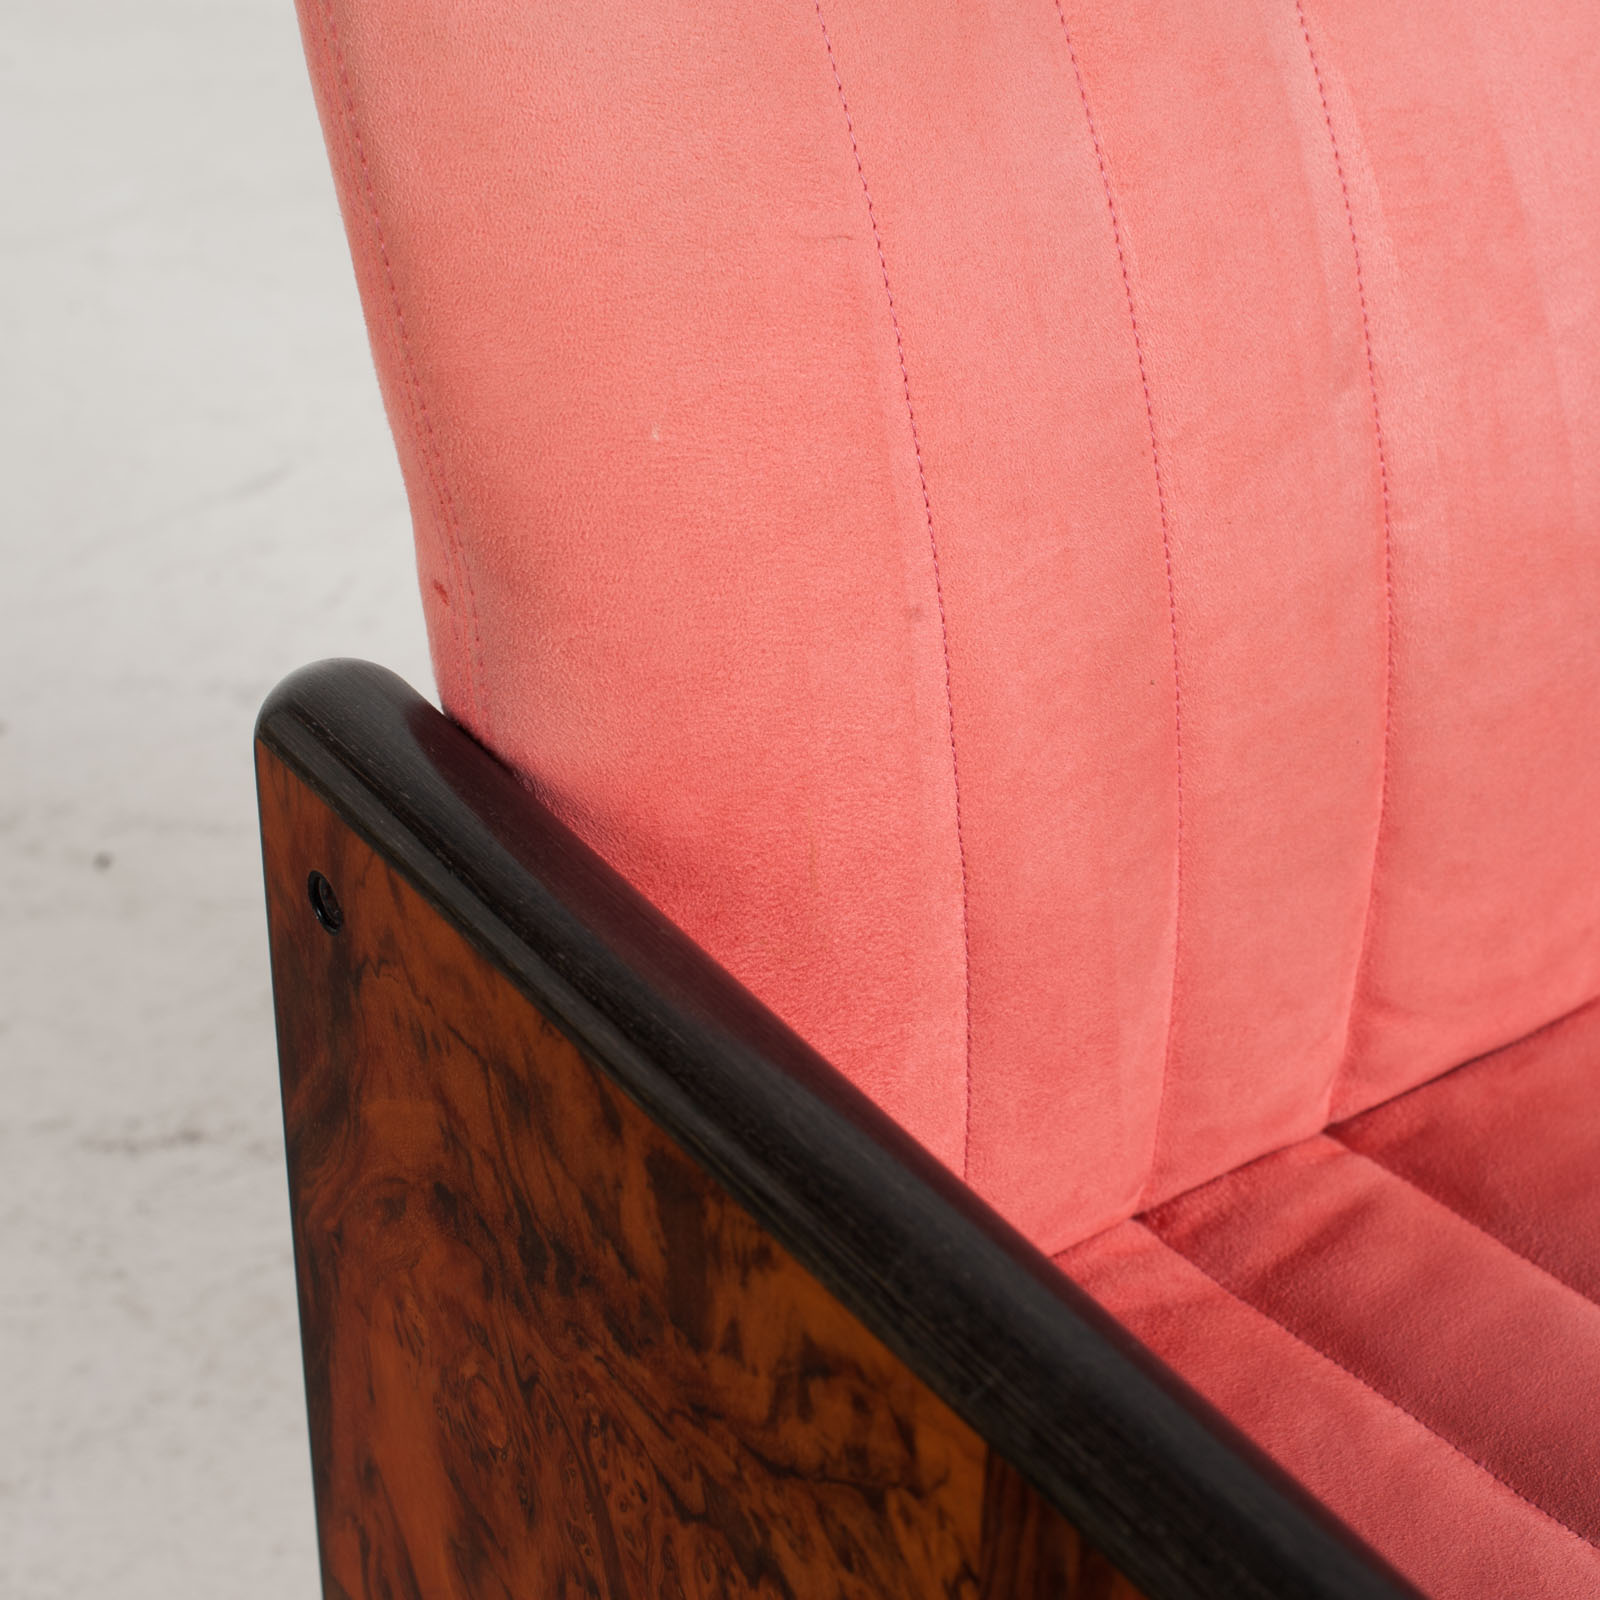 Set Of 8 Chairs By Kazuhide Takahama In Pink Upholstery 1950s Italy 08